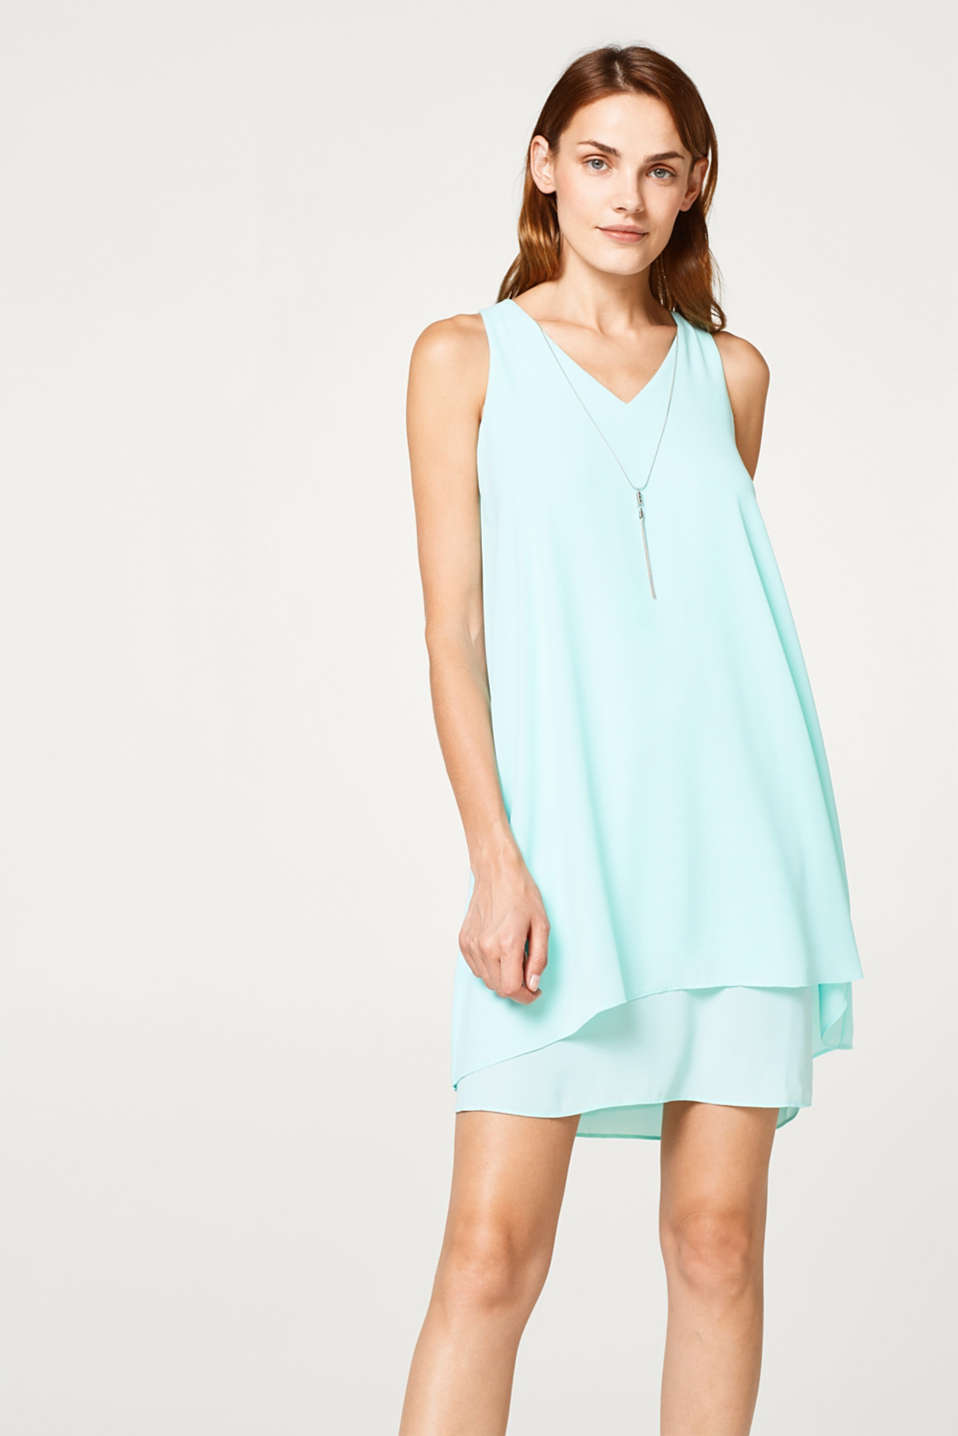 Layered-look chiffon dress with a detachable chain